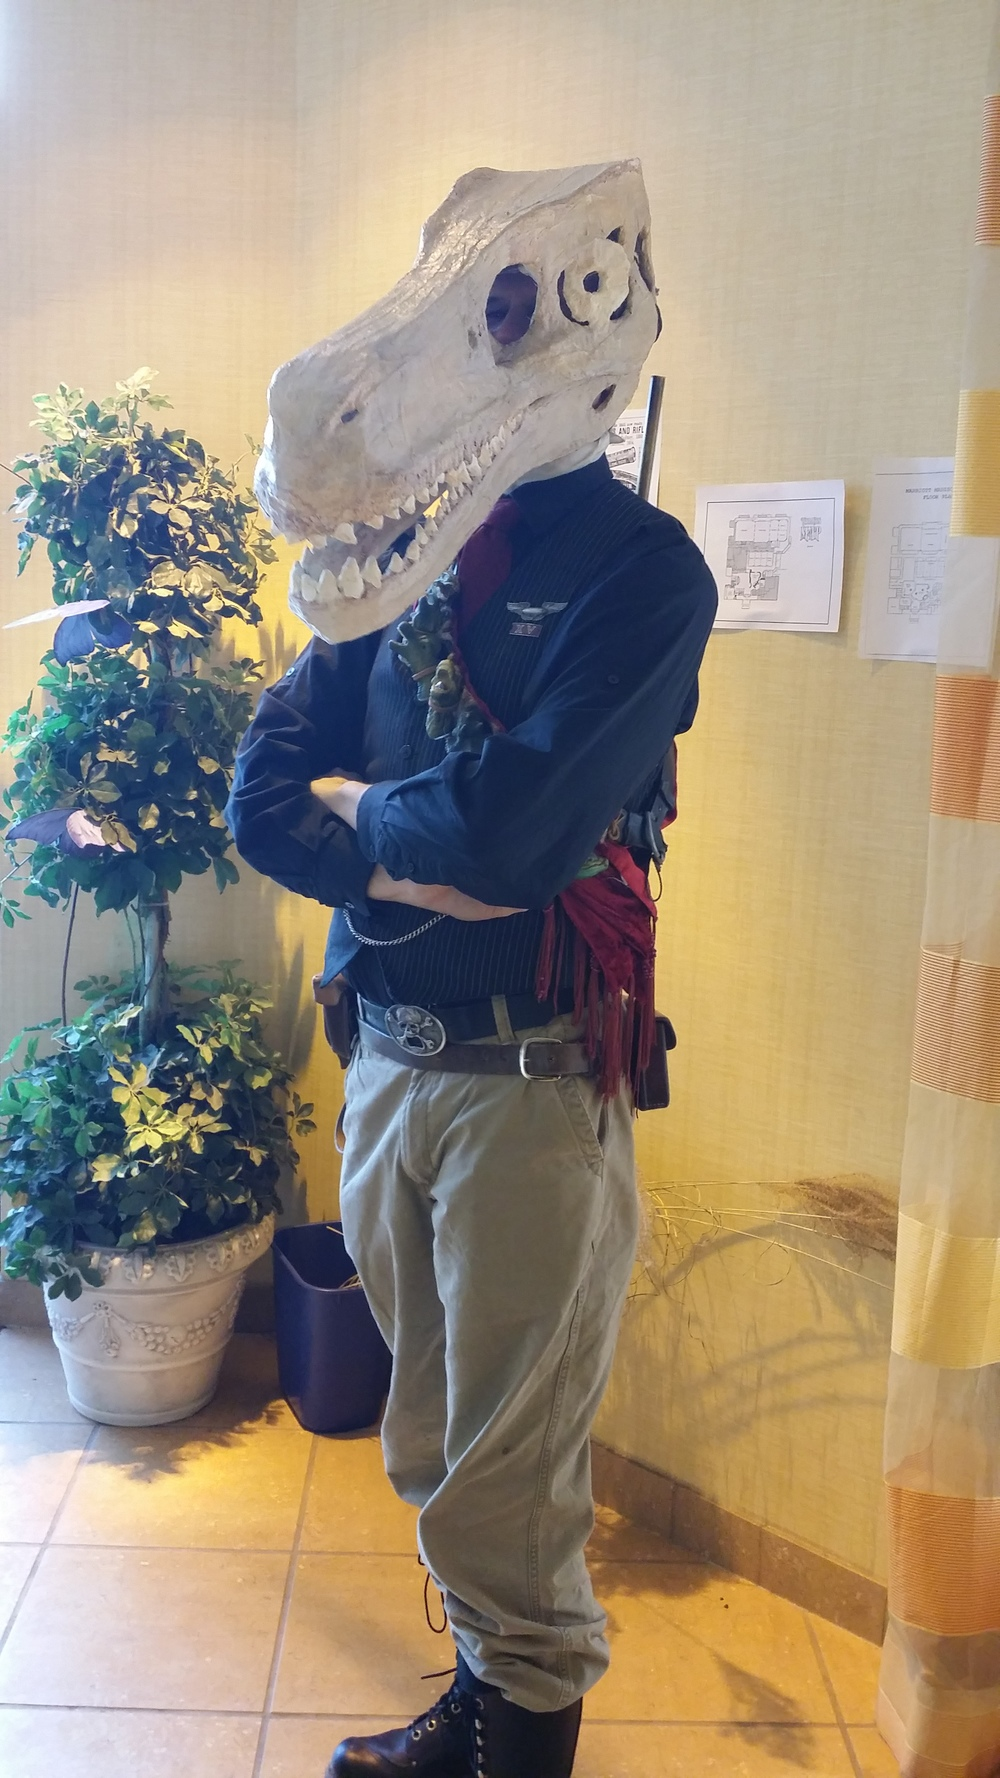 This attendee had a dinosaur skull mask that actually could move when he talked.